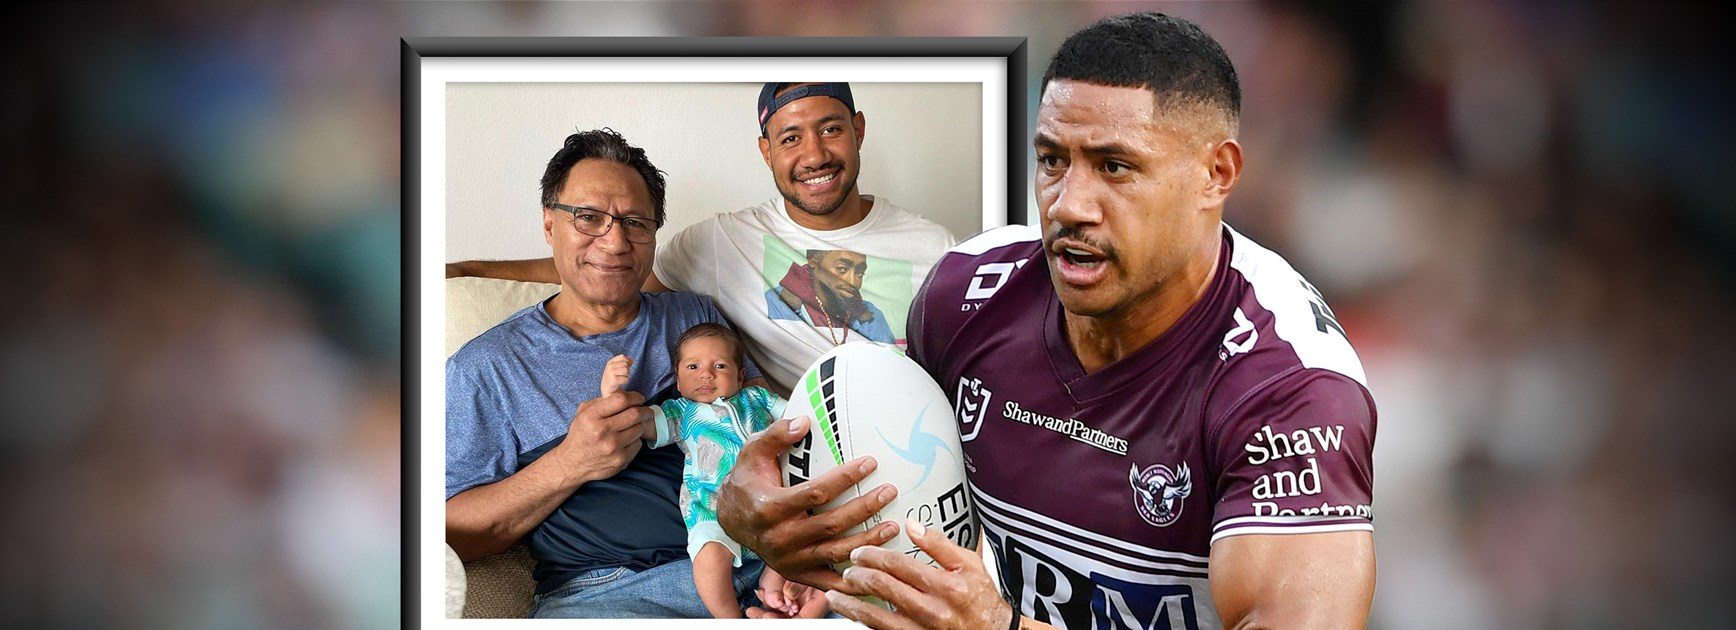 Night shifts to NRL: Manly giant honours dad's sacrifice for family